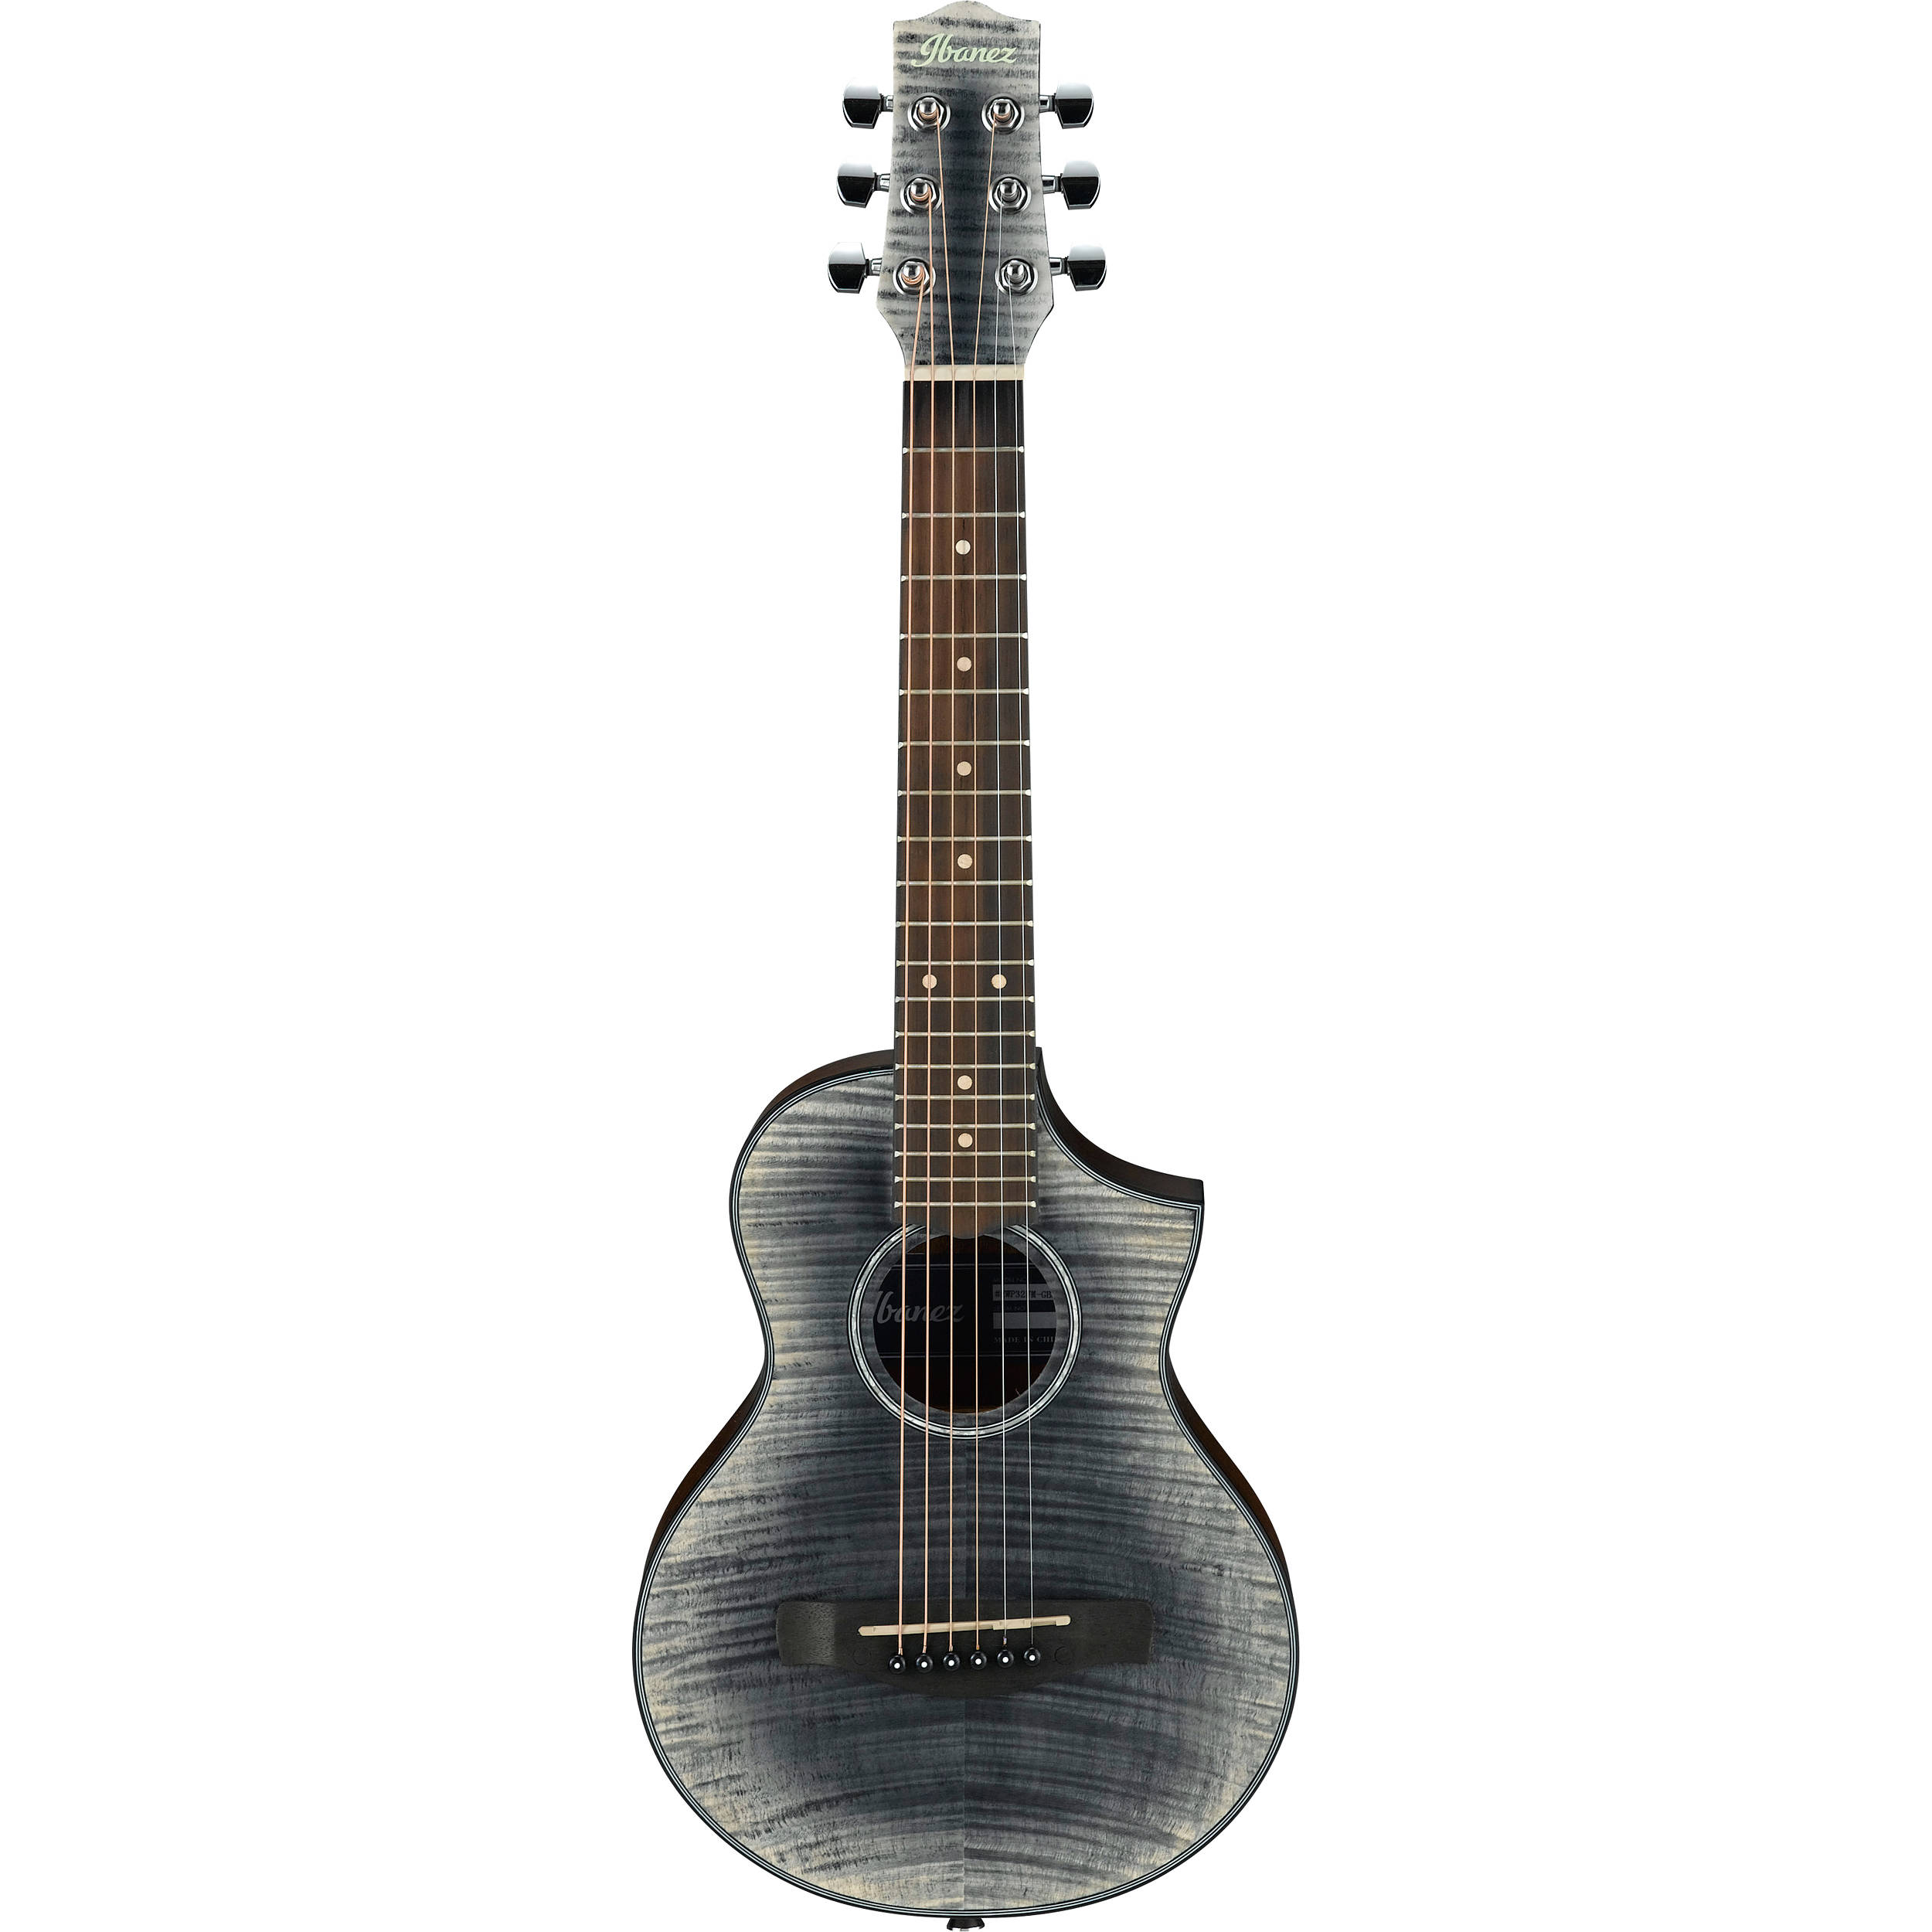 Ibanez Ewp32fm Ewp Series Acoustic Guitar Ewp32fmgbk B H Photo